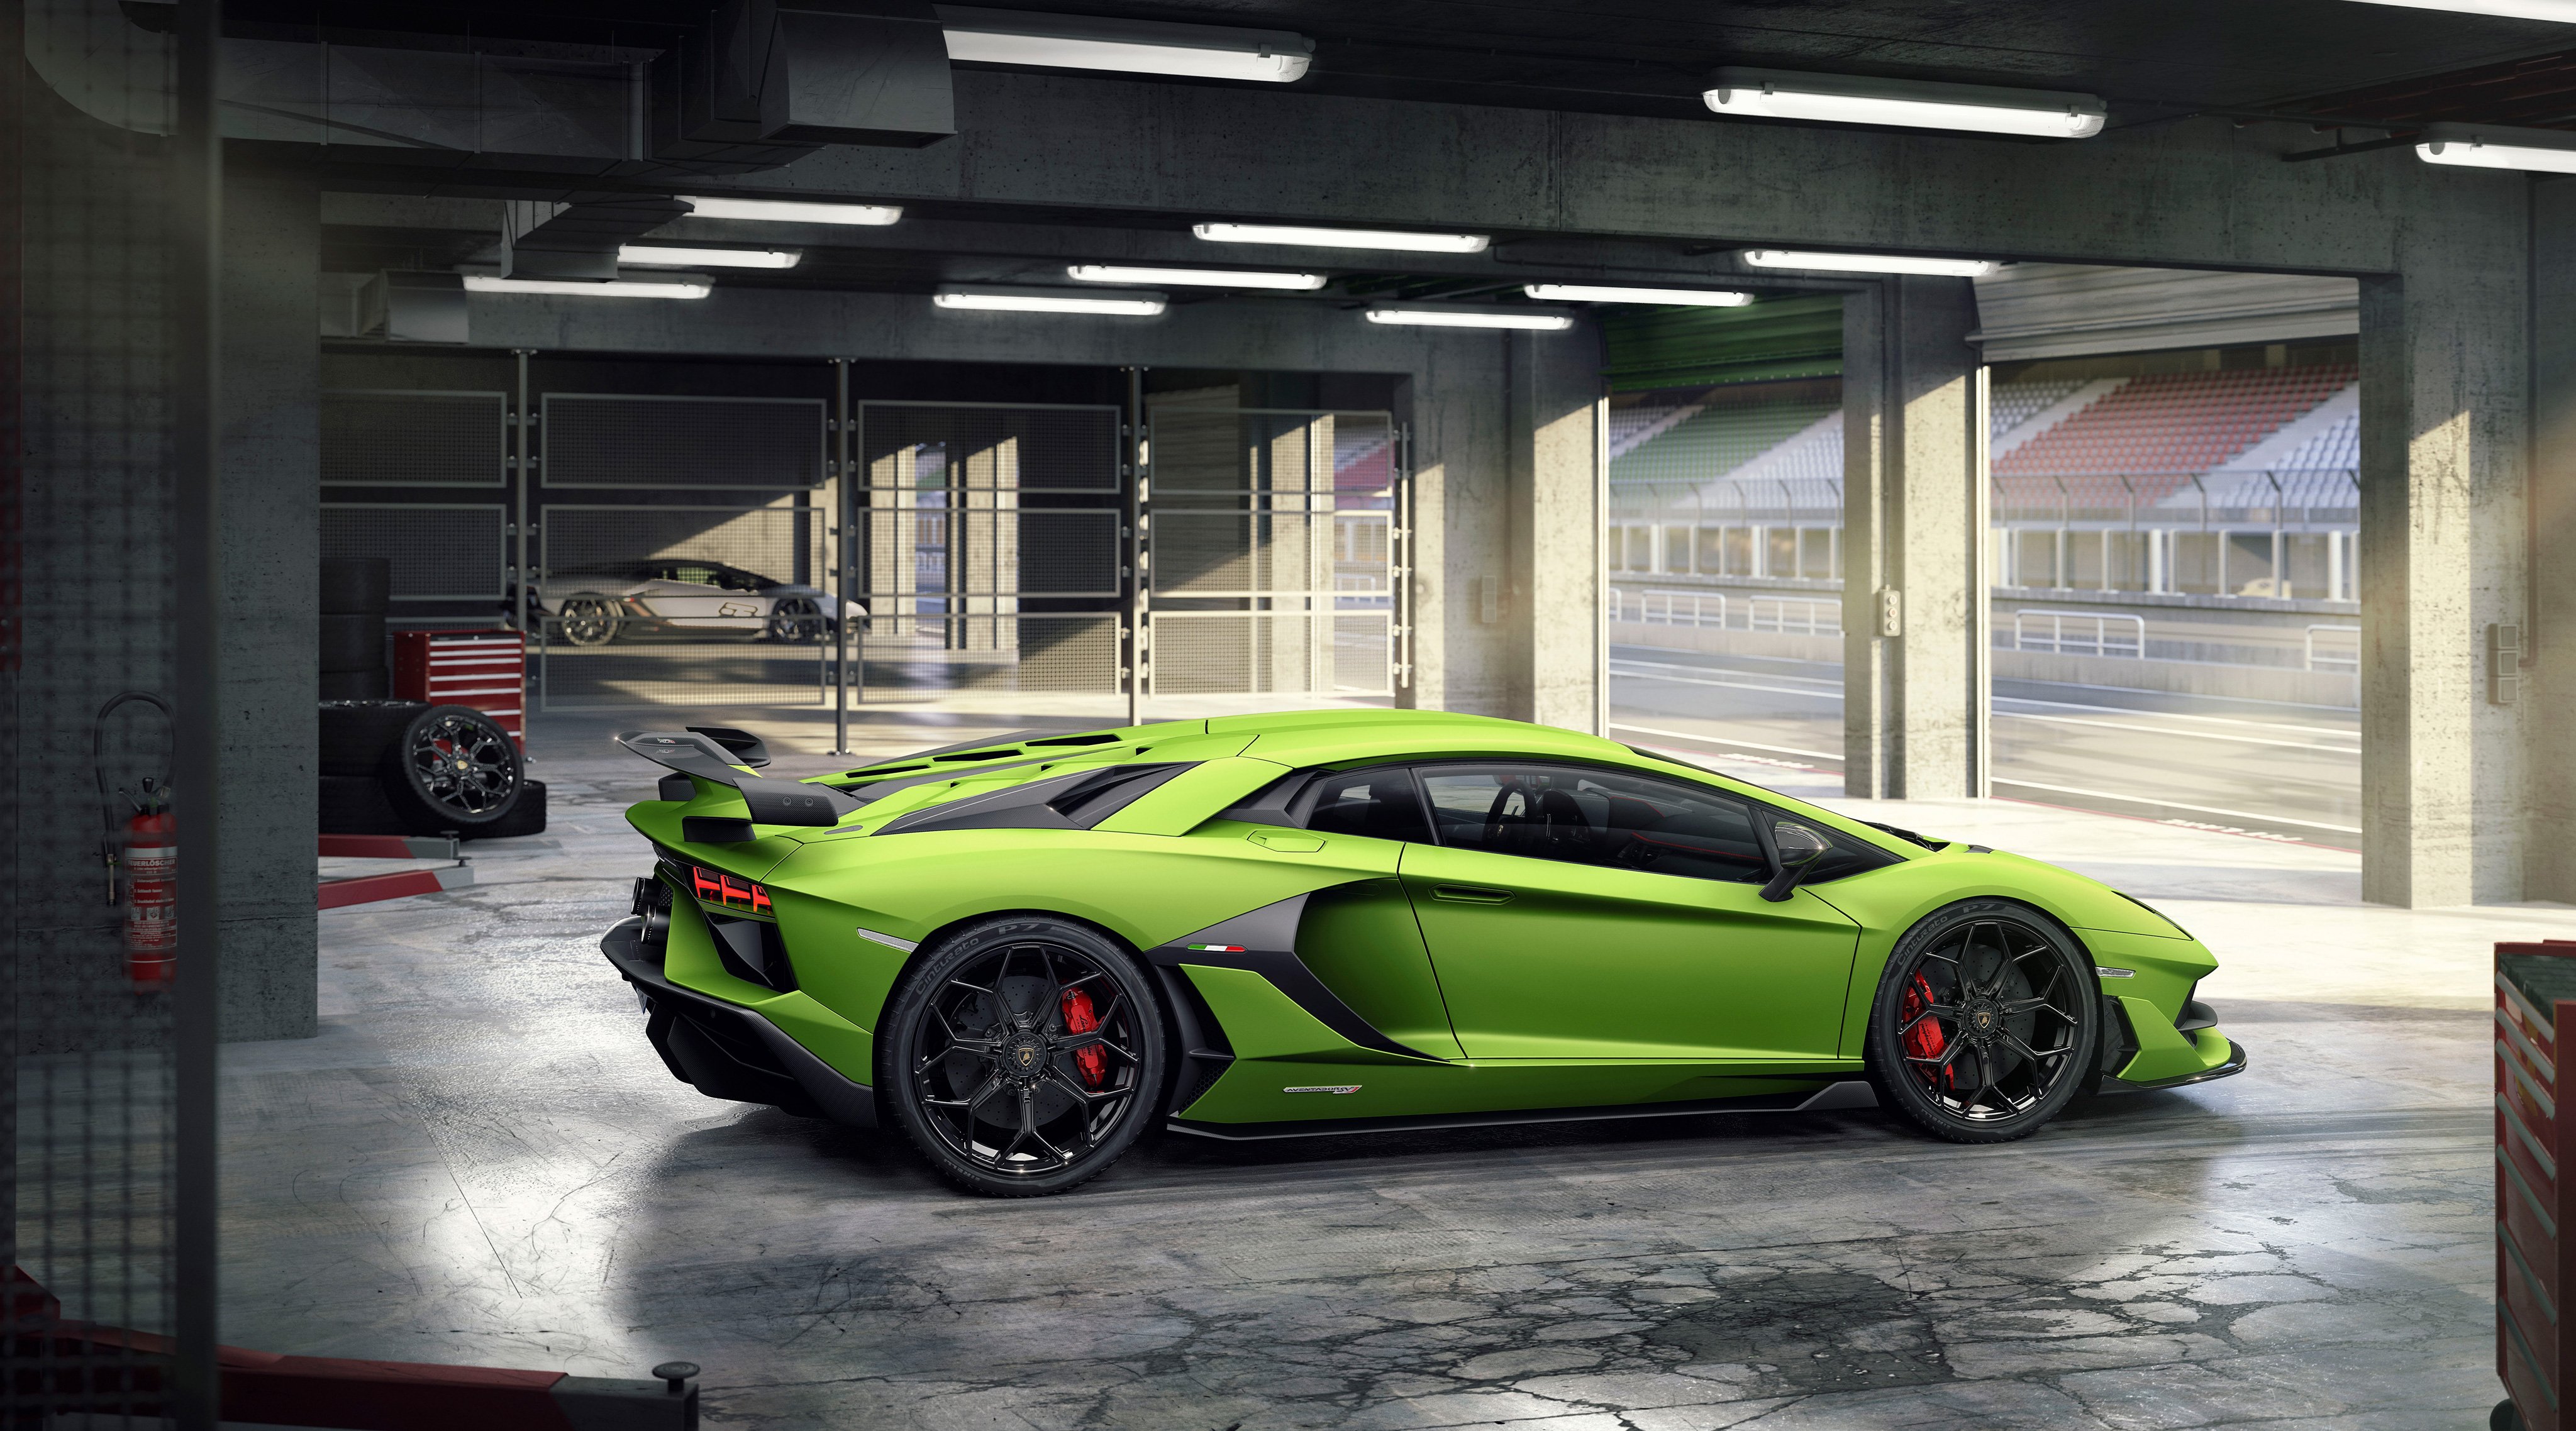 2018 Lamborghini Aventador SVJ 4k, HD Cars, 4k Wallpapers